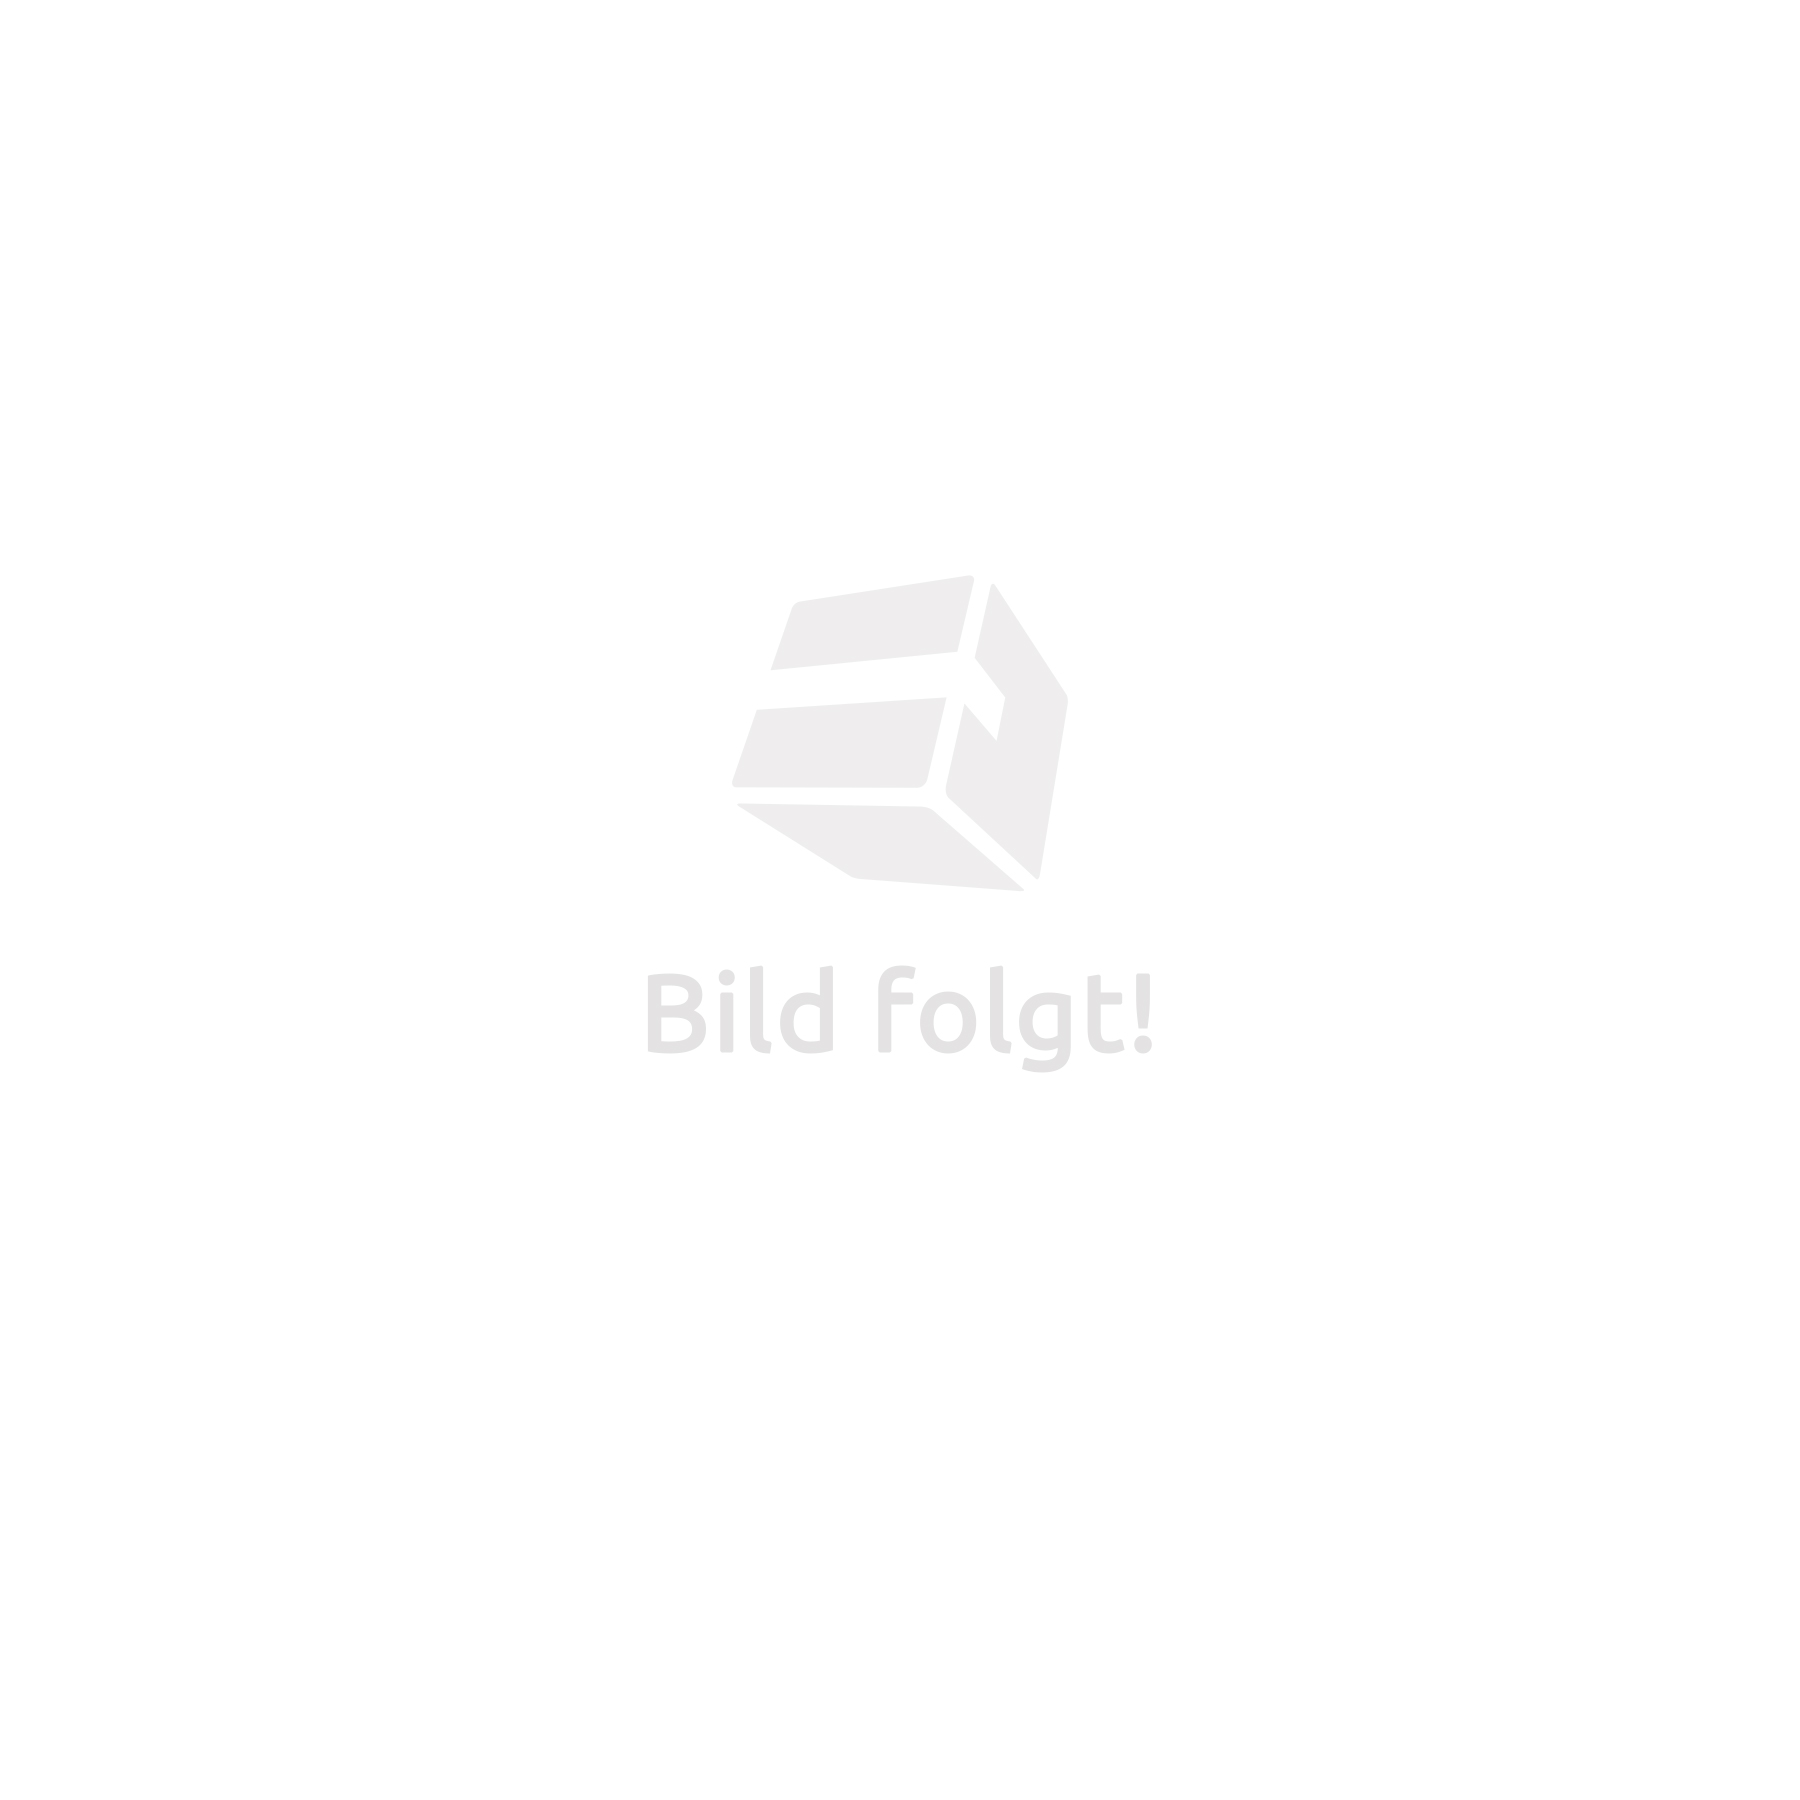 Table de bar, Table de Jardin, Aluminium - Hauteur réglable 6,5 cm Pliable